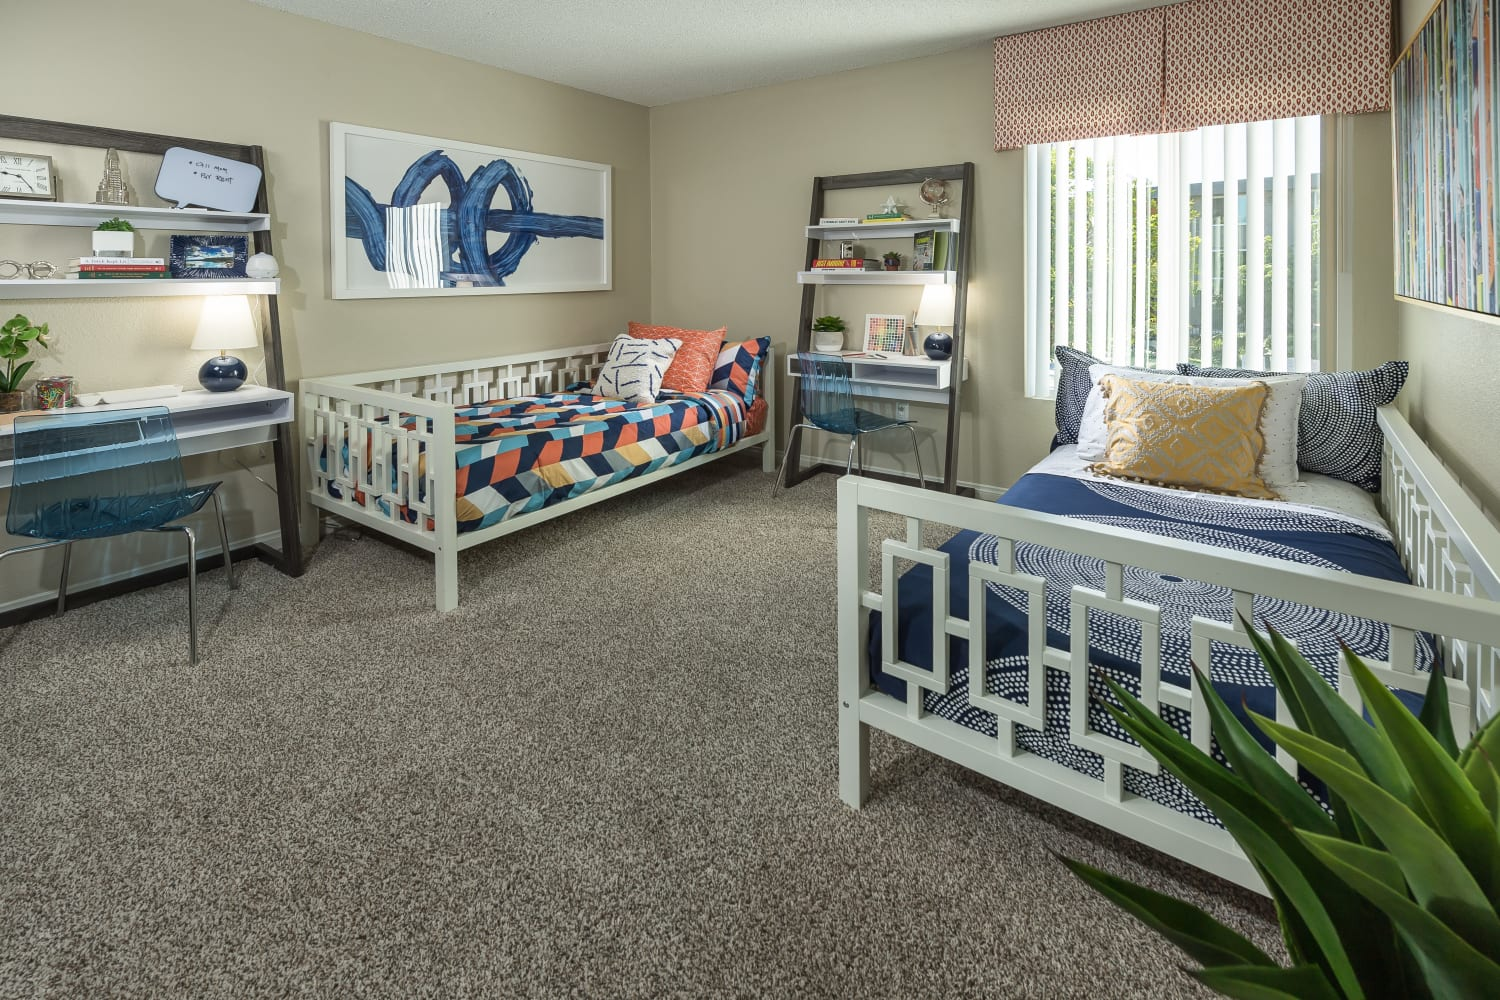 Bedroom at UCA Apartment Homes in Fullerton, California